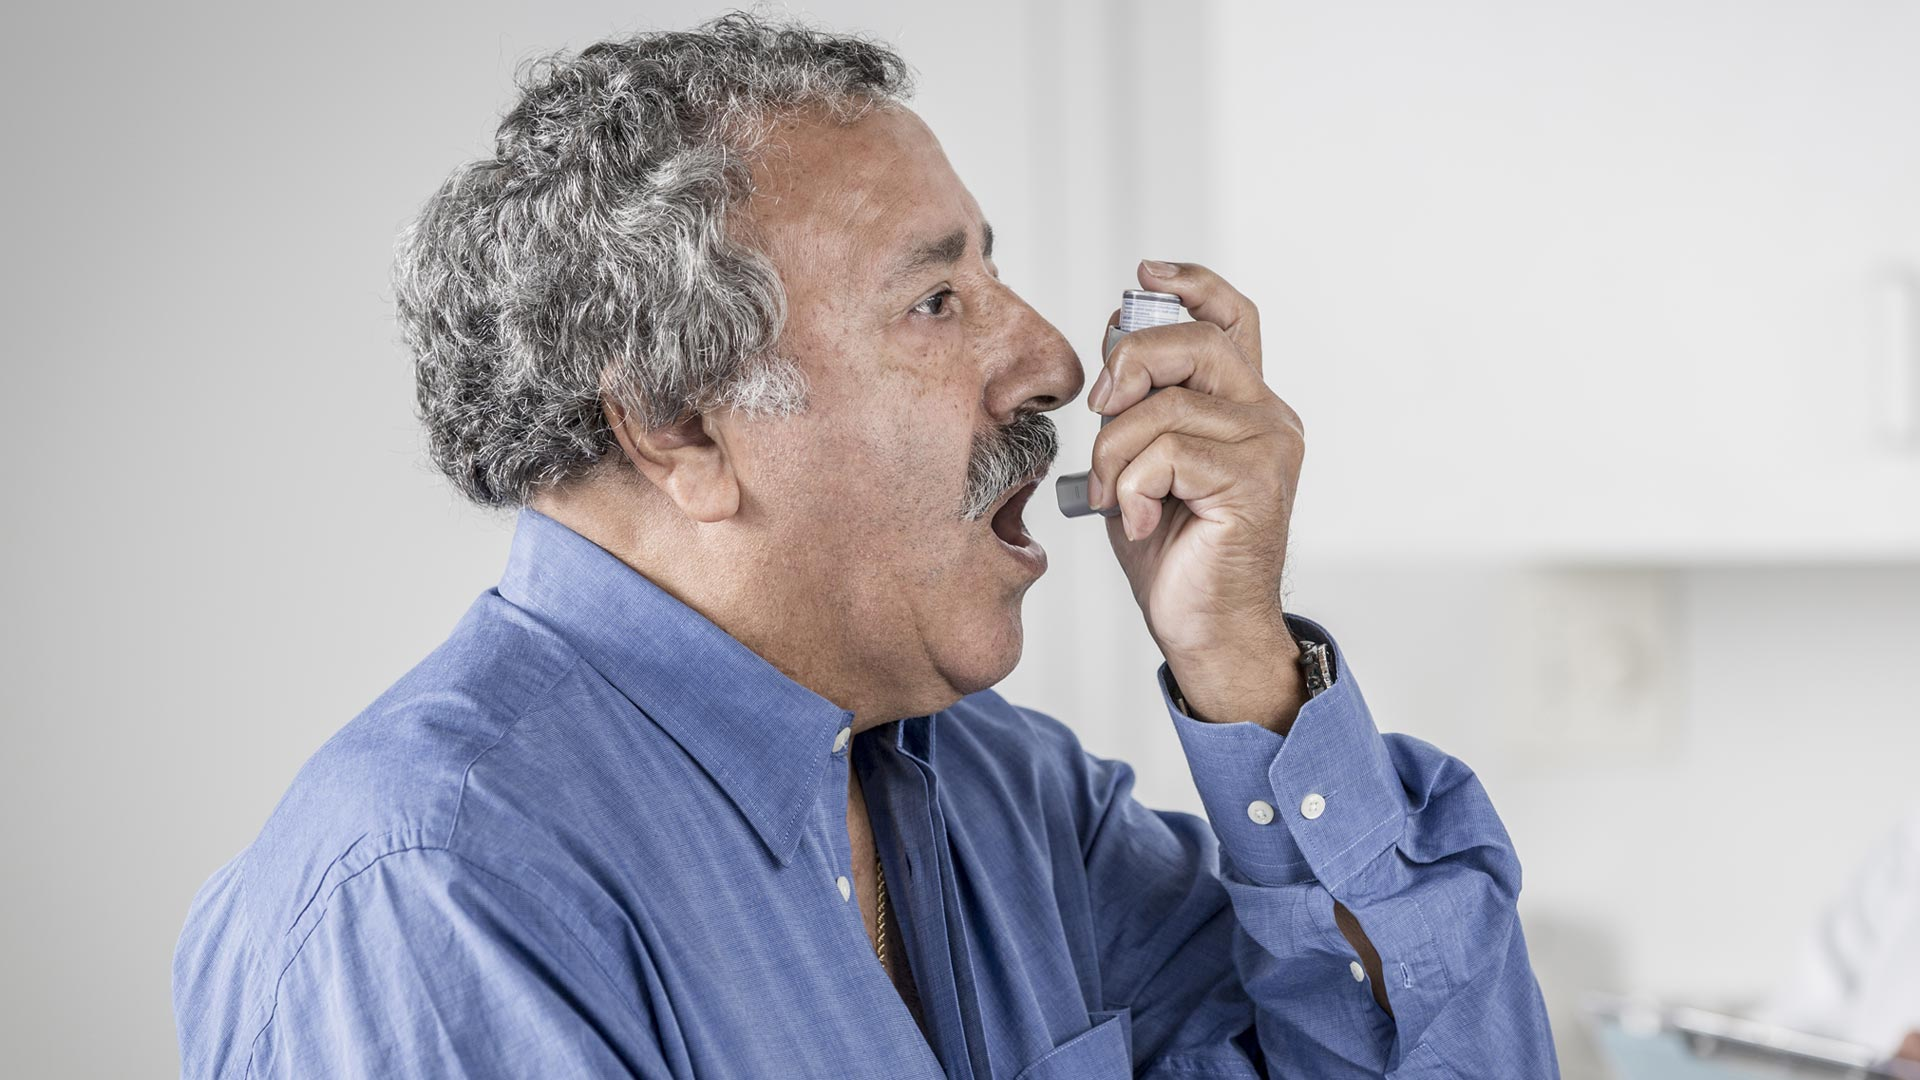 Uncovering Asthma's Effects on COVID-19 Severity